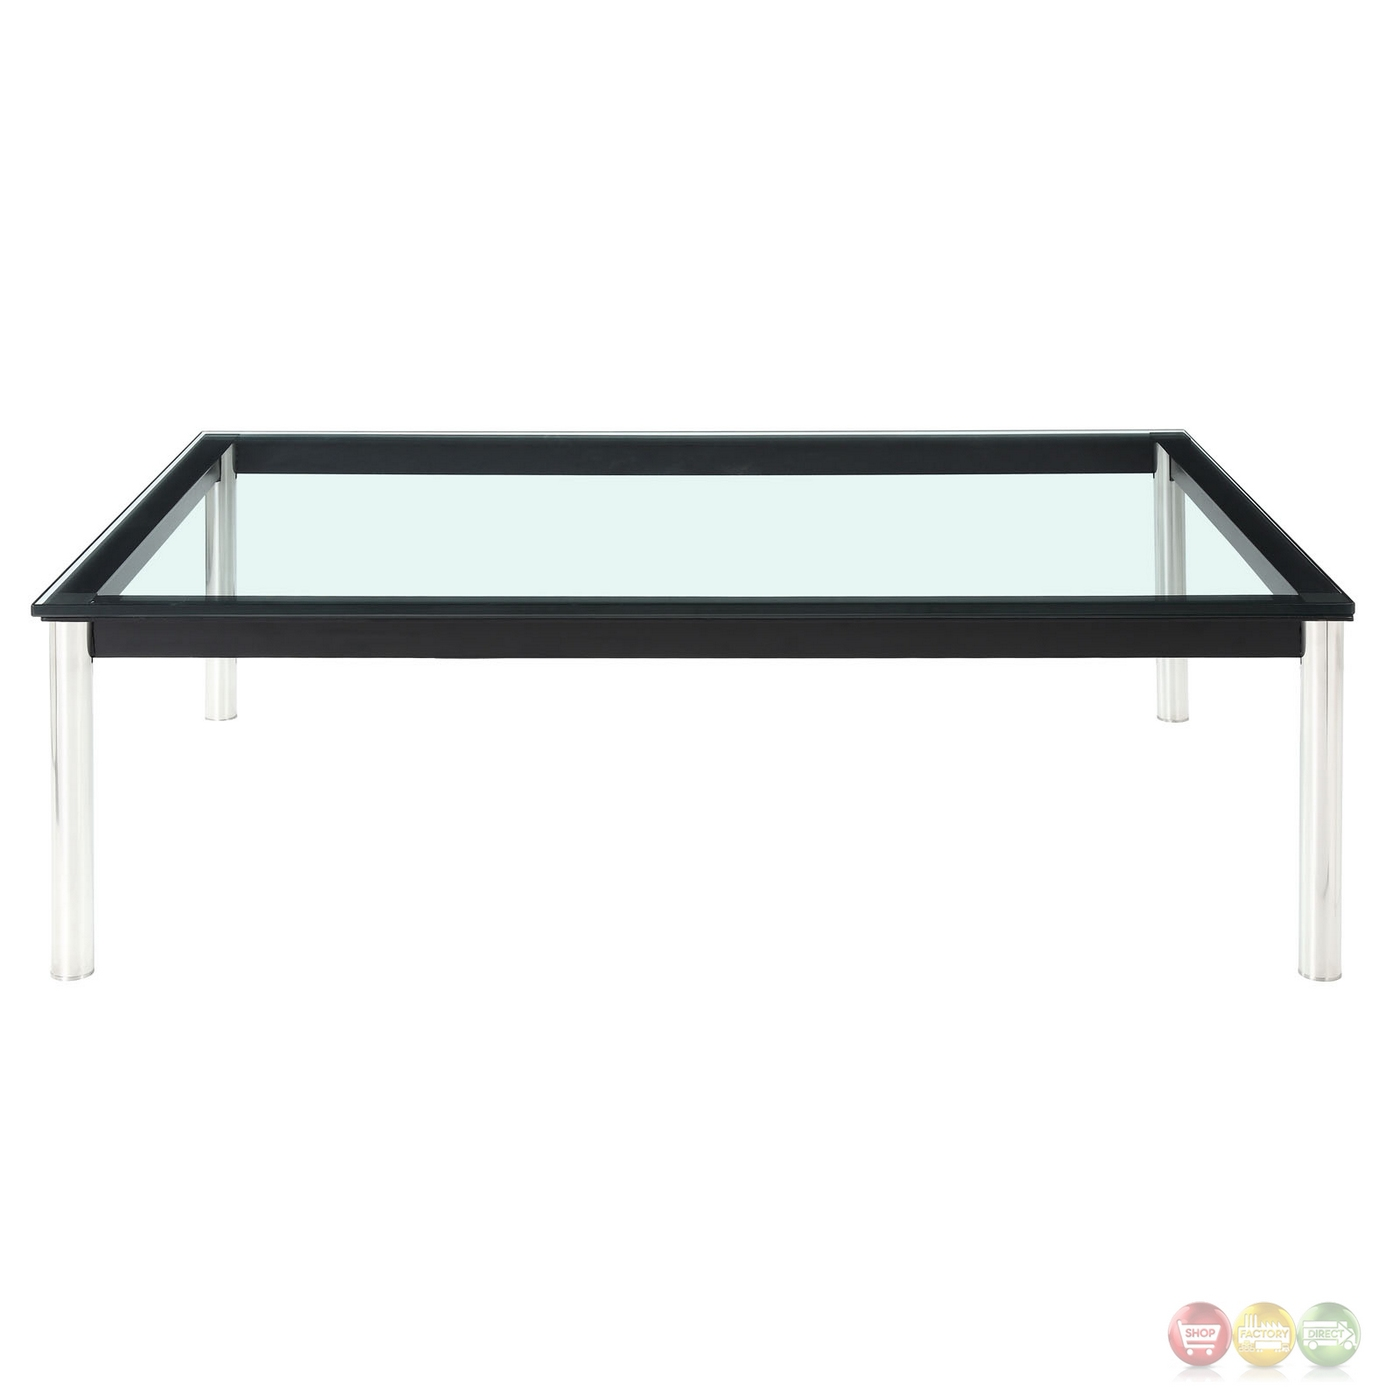 Charles Modern 47 Rectangle Glass Top Coffee Table W Steel Frame Black